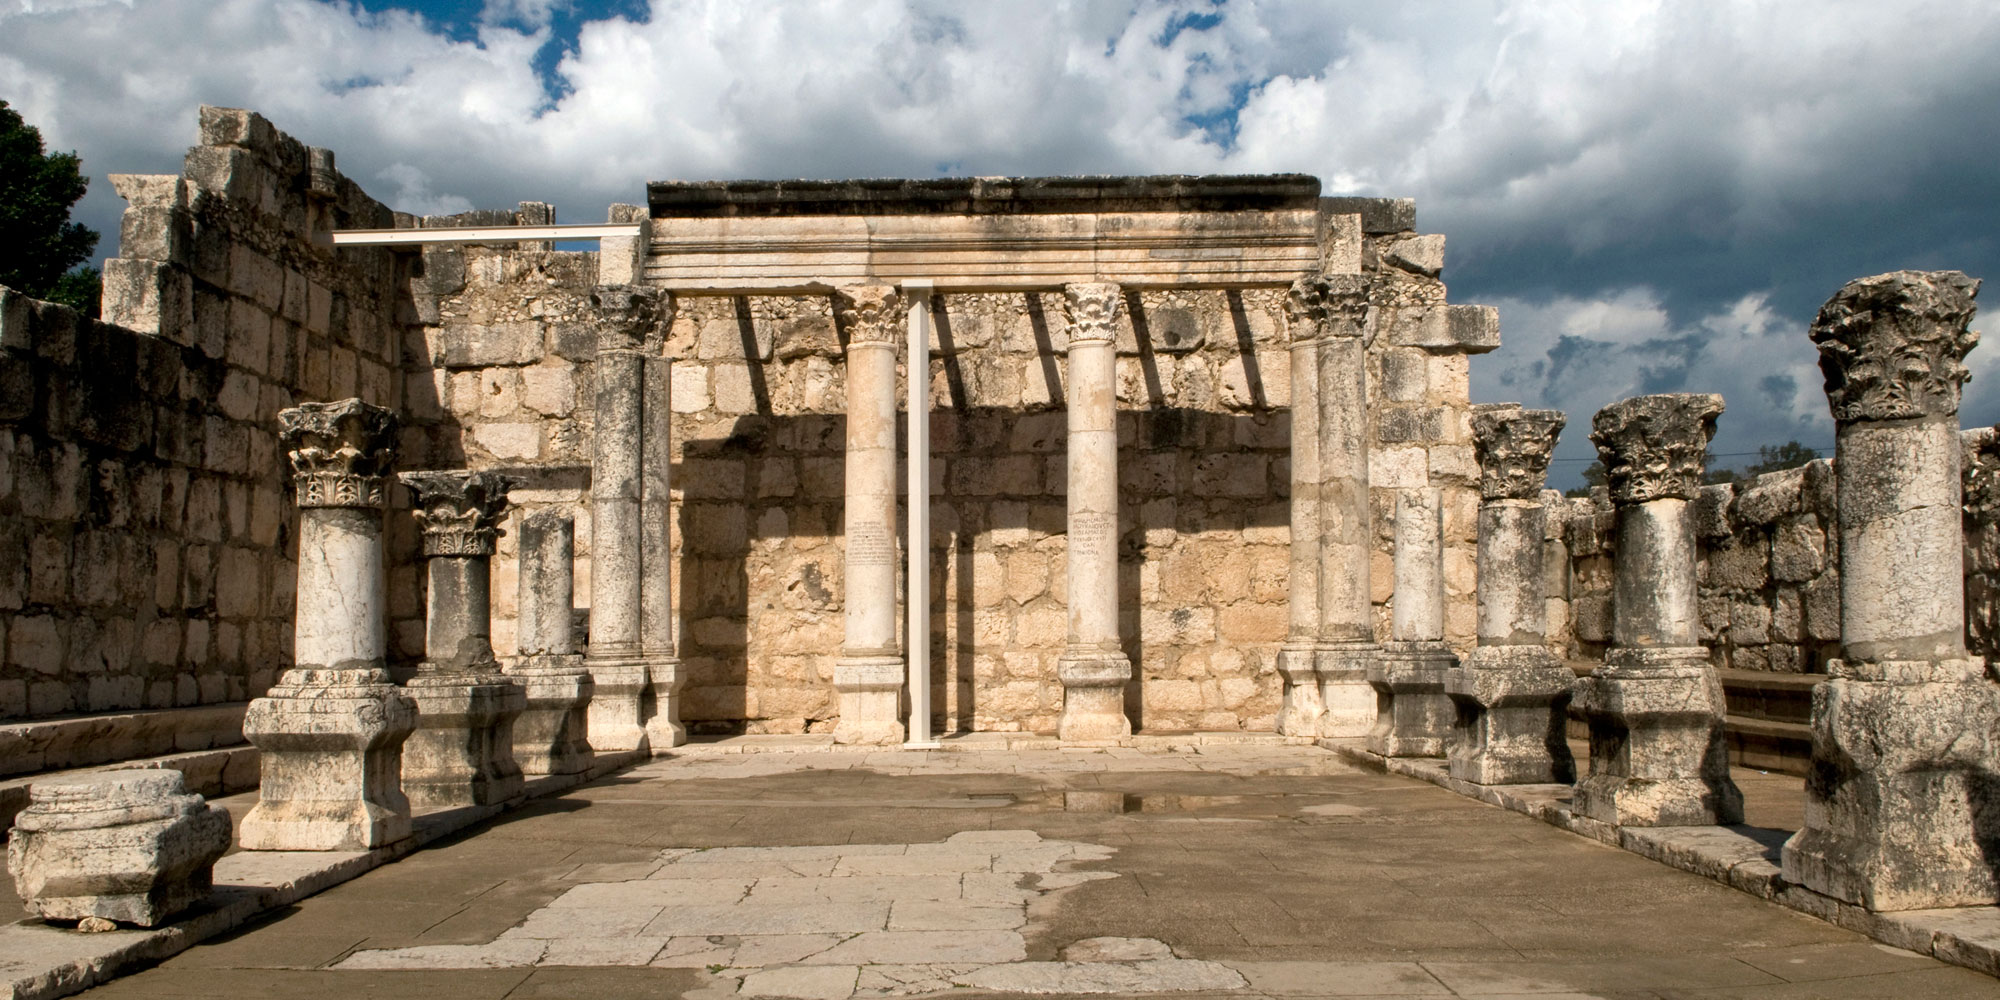 The ruins of an ancient synagogue in Capernaum from the 4th century A.D. Image via Wikimeida Commons.